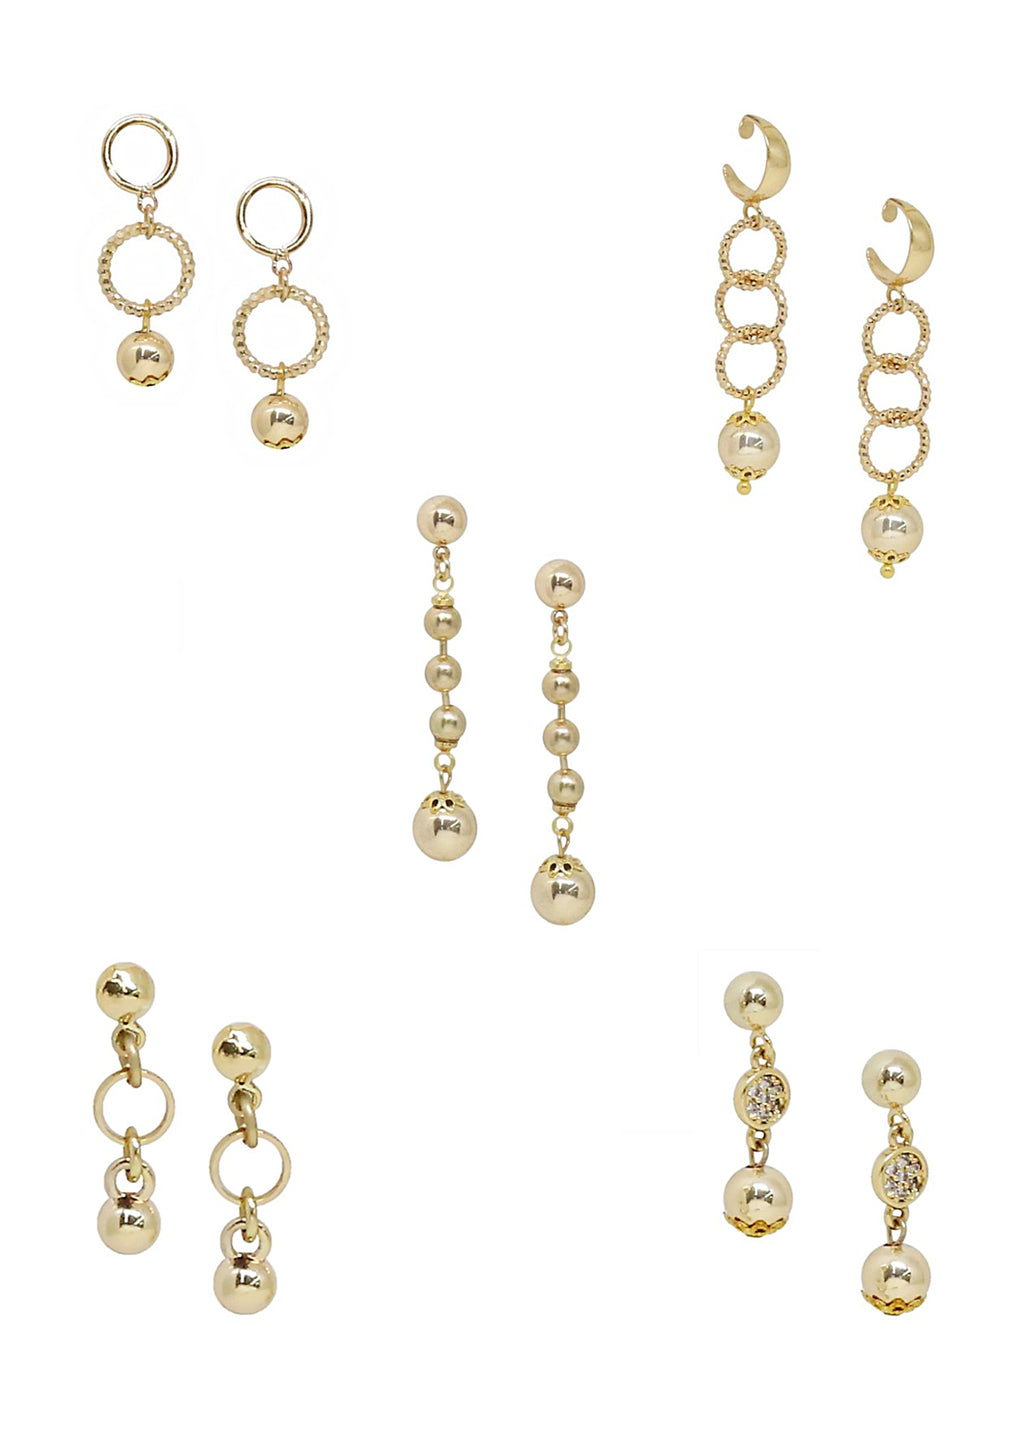 ETTIKA 5 PAIRS MINI ASSORTED GOLD EARRINGS